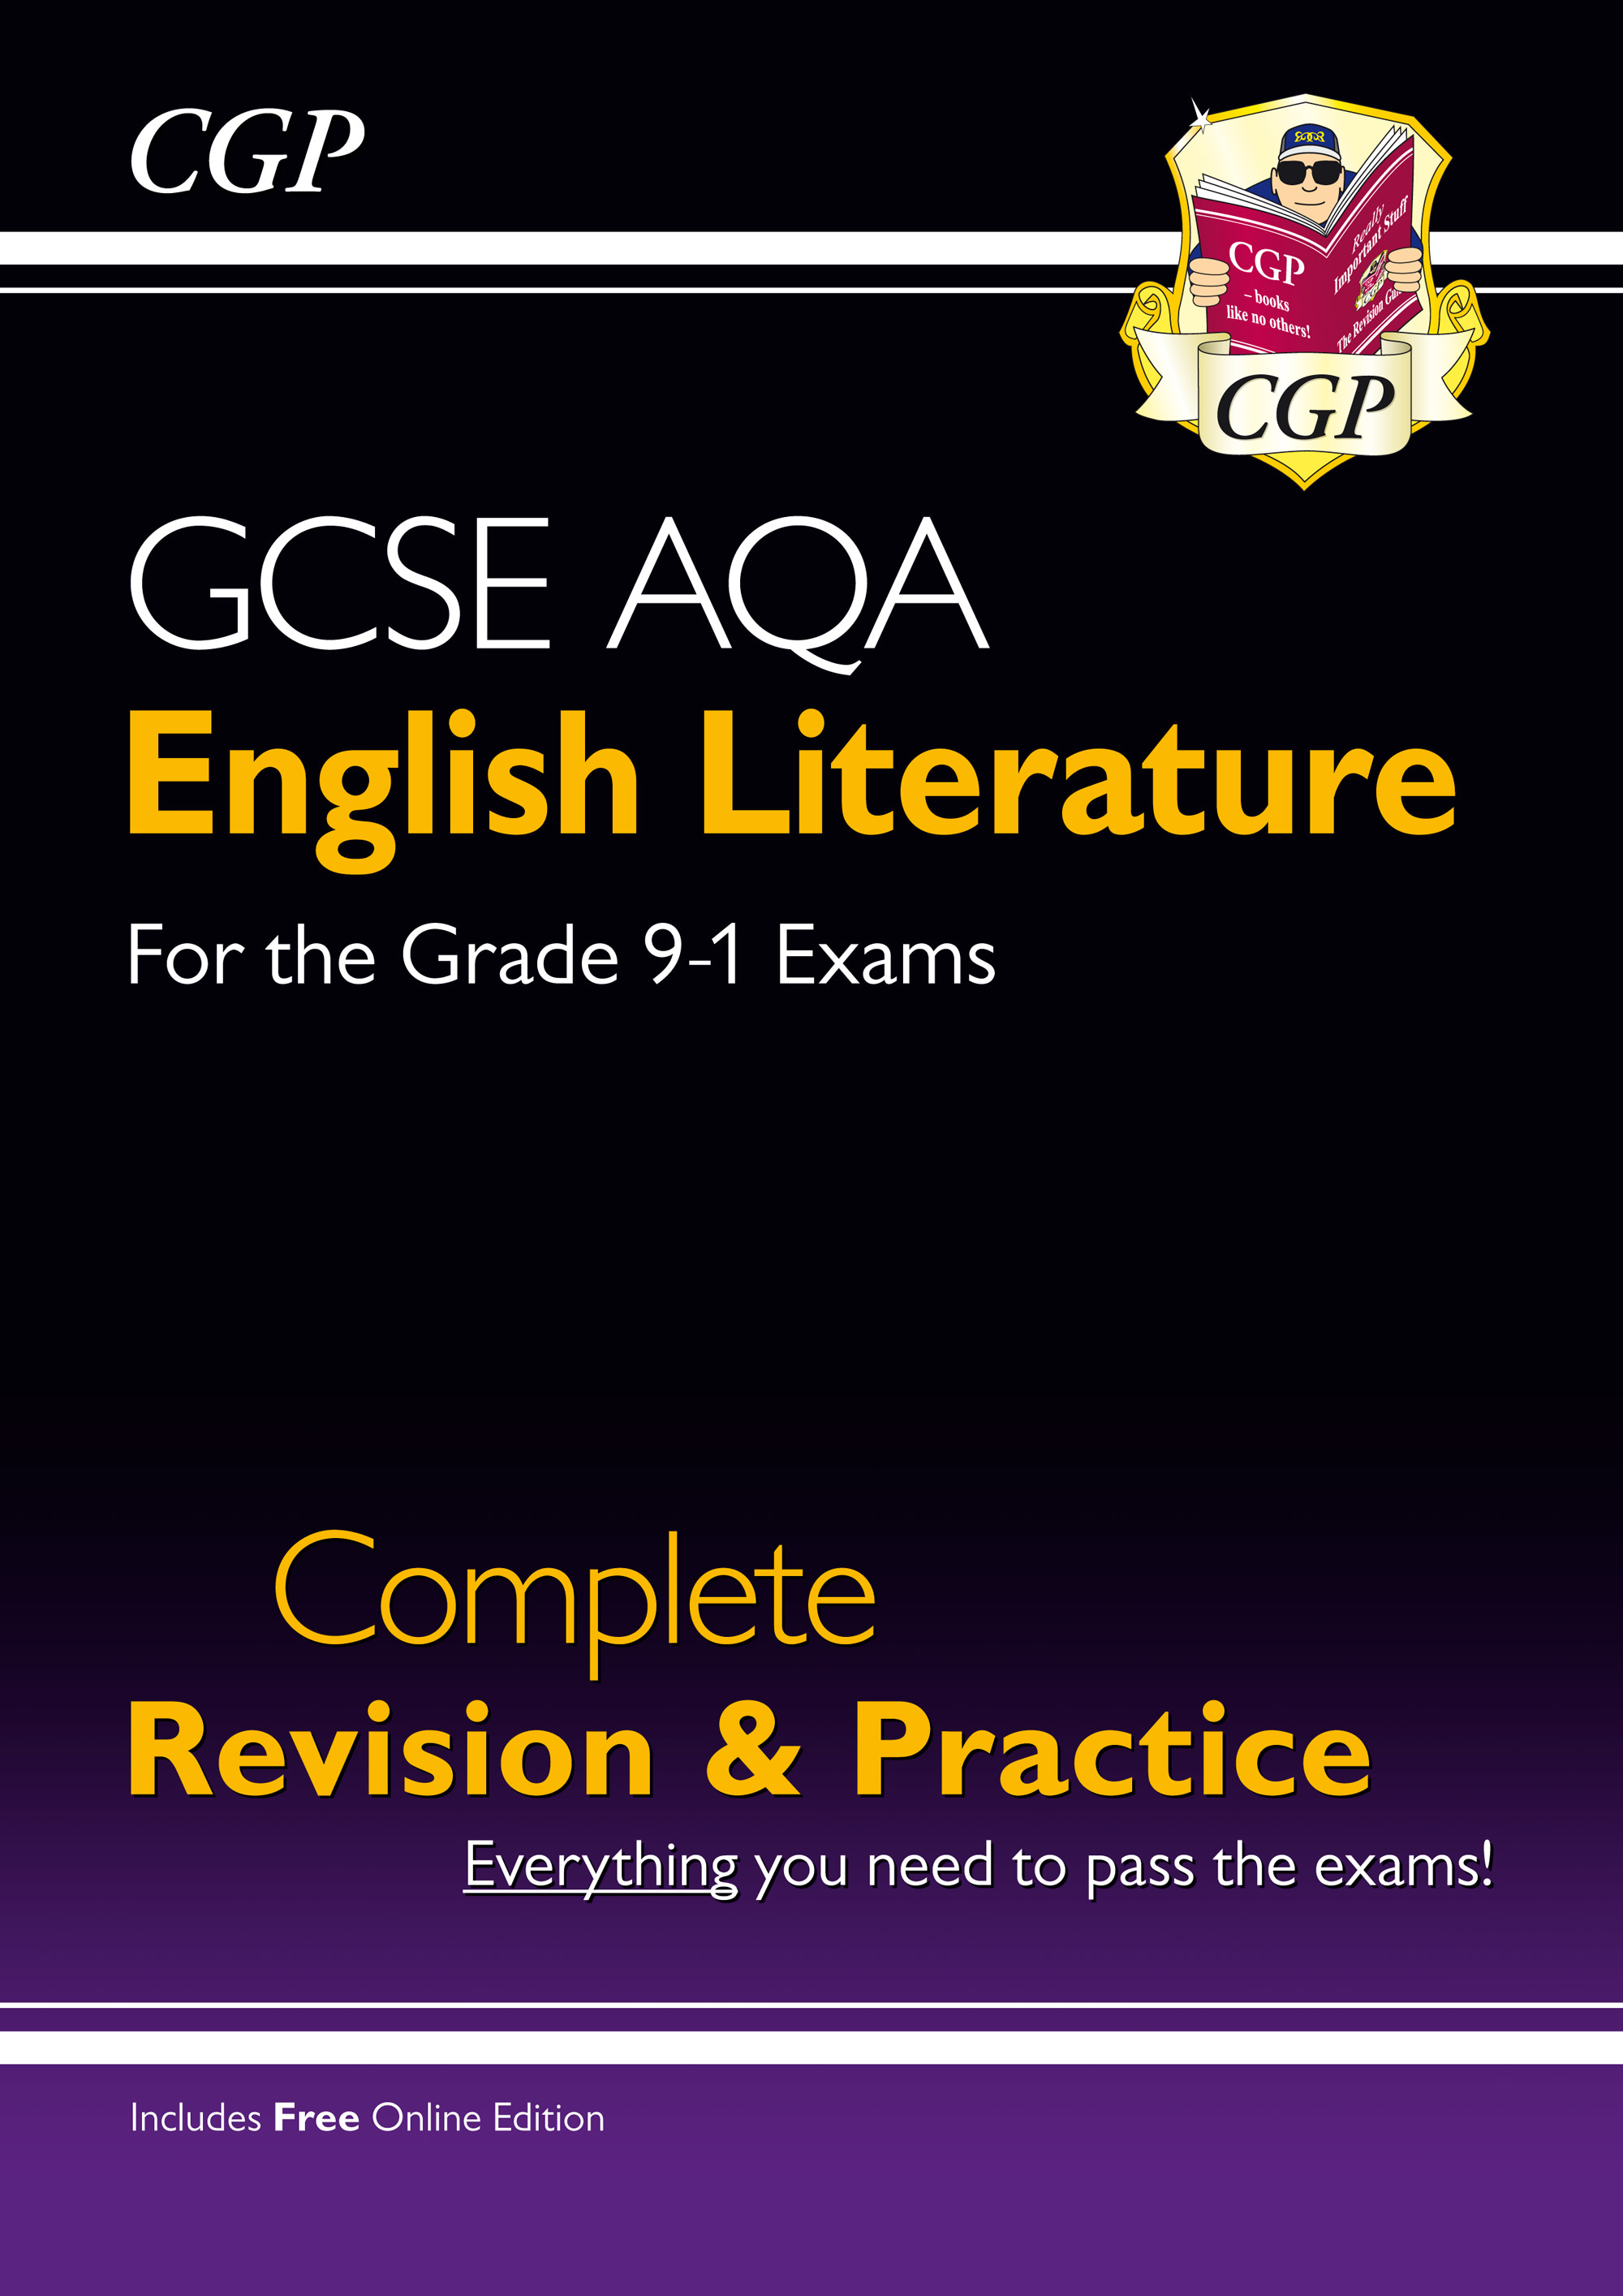 ELAS41 - New GCSE English Literature AQA Complete Revision & Practice - Grade 9-1 (with Online Editi